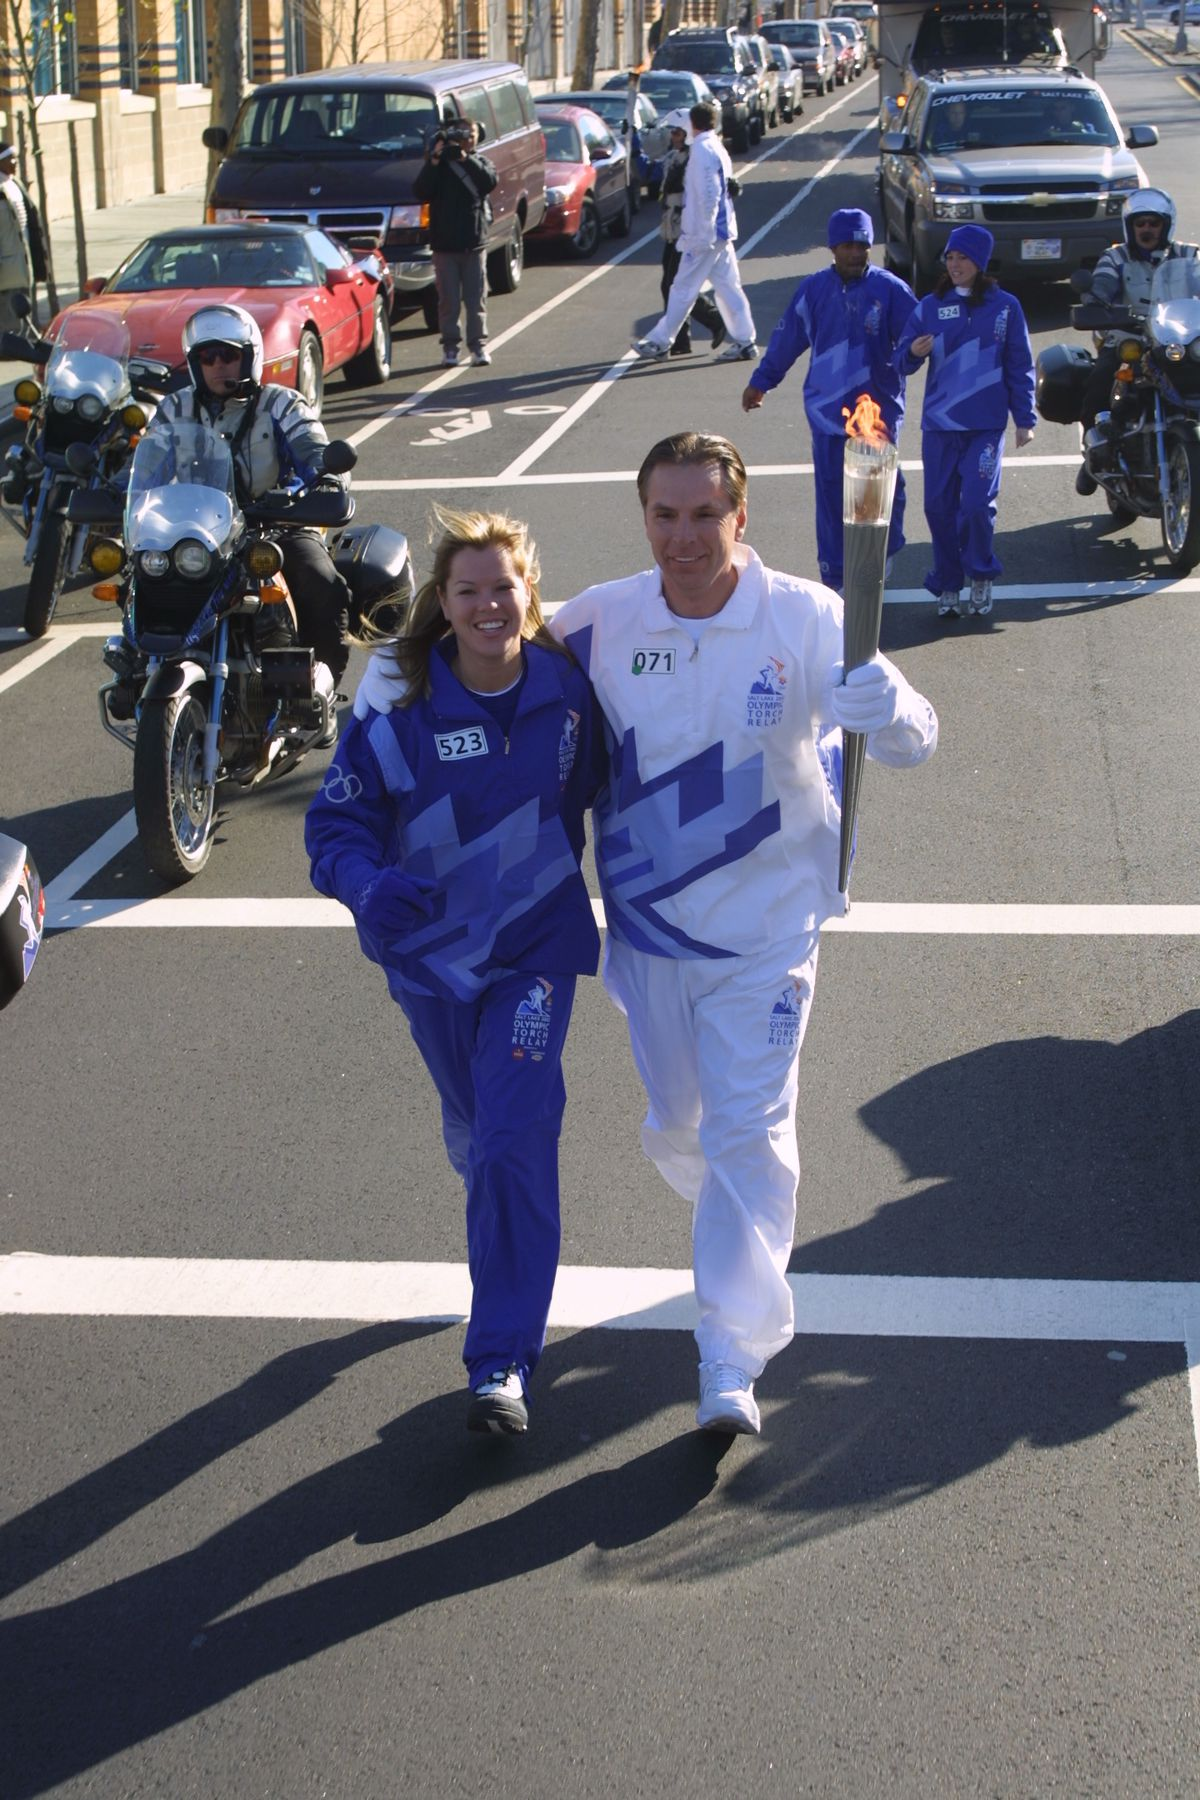 Fraser Bullock, then the chief operating officer of the Salt Lake Organizing Committee for the 2002 Winter Games, and his daughter, Sabrina Gardner, carry the Olympic torch in Staten Island, New York, on Dec. 23, 2001.